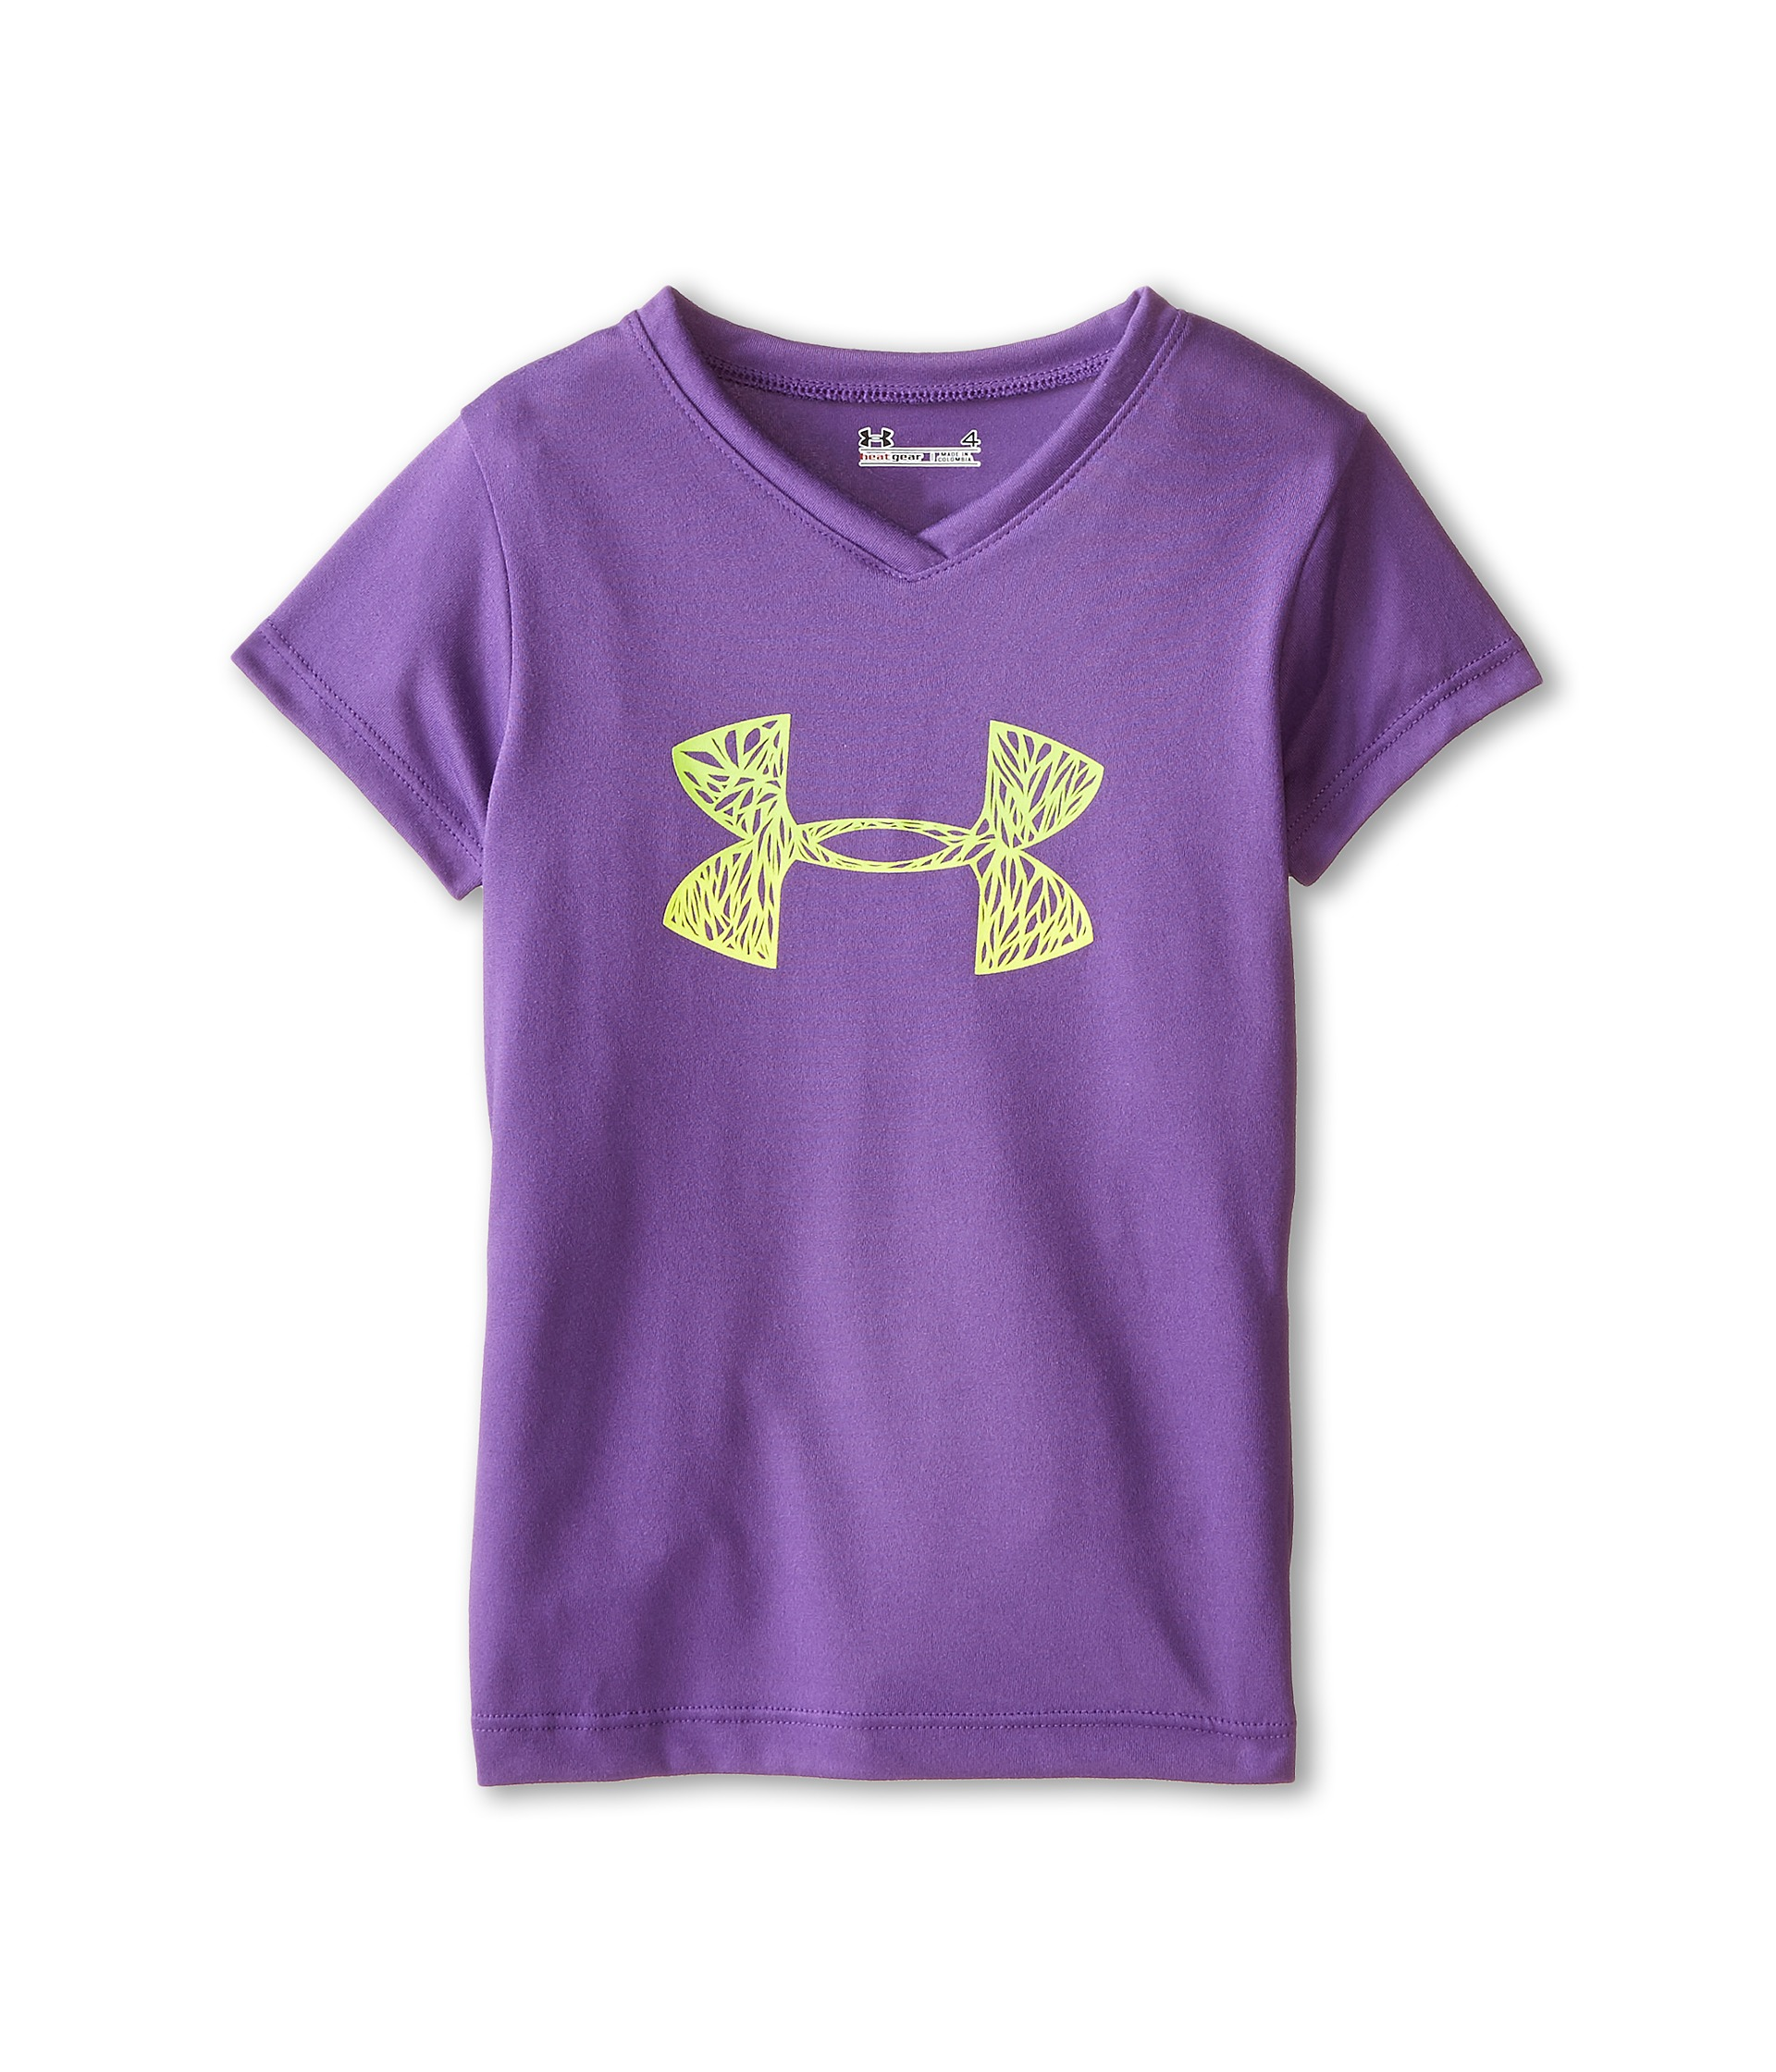 Under armour kids cutout big logo short sleeve t shirt for Under armour shirts for kids